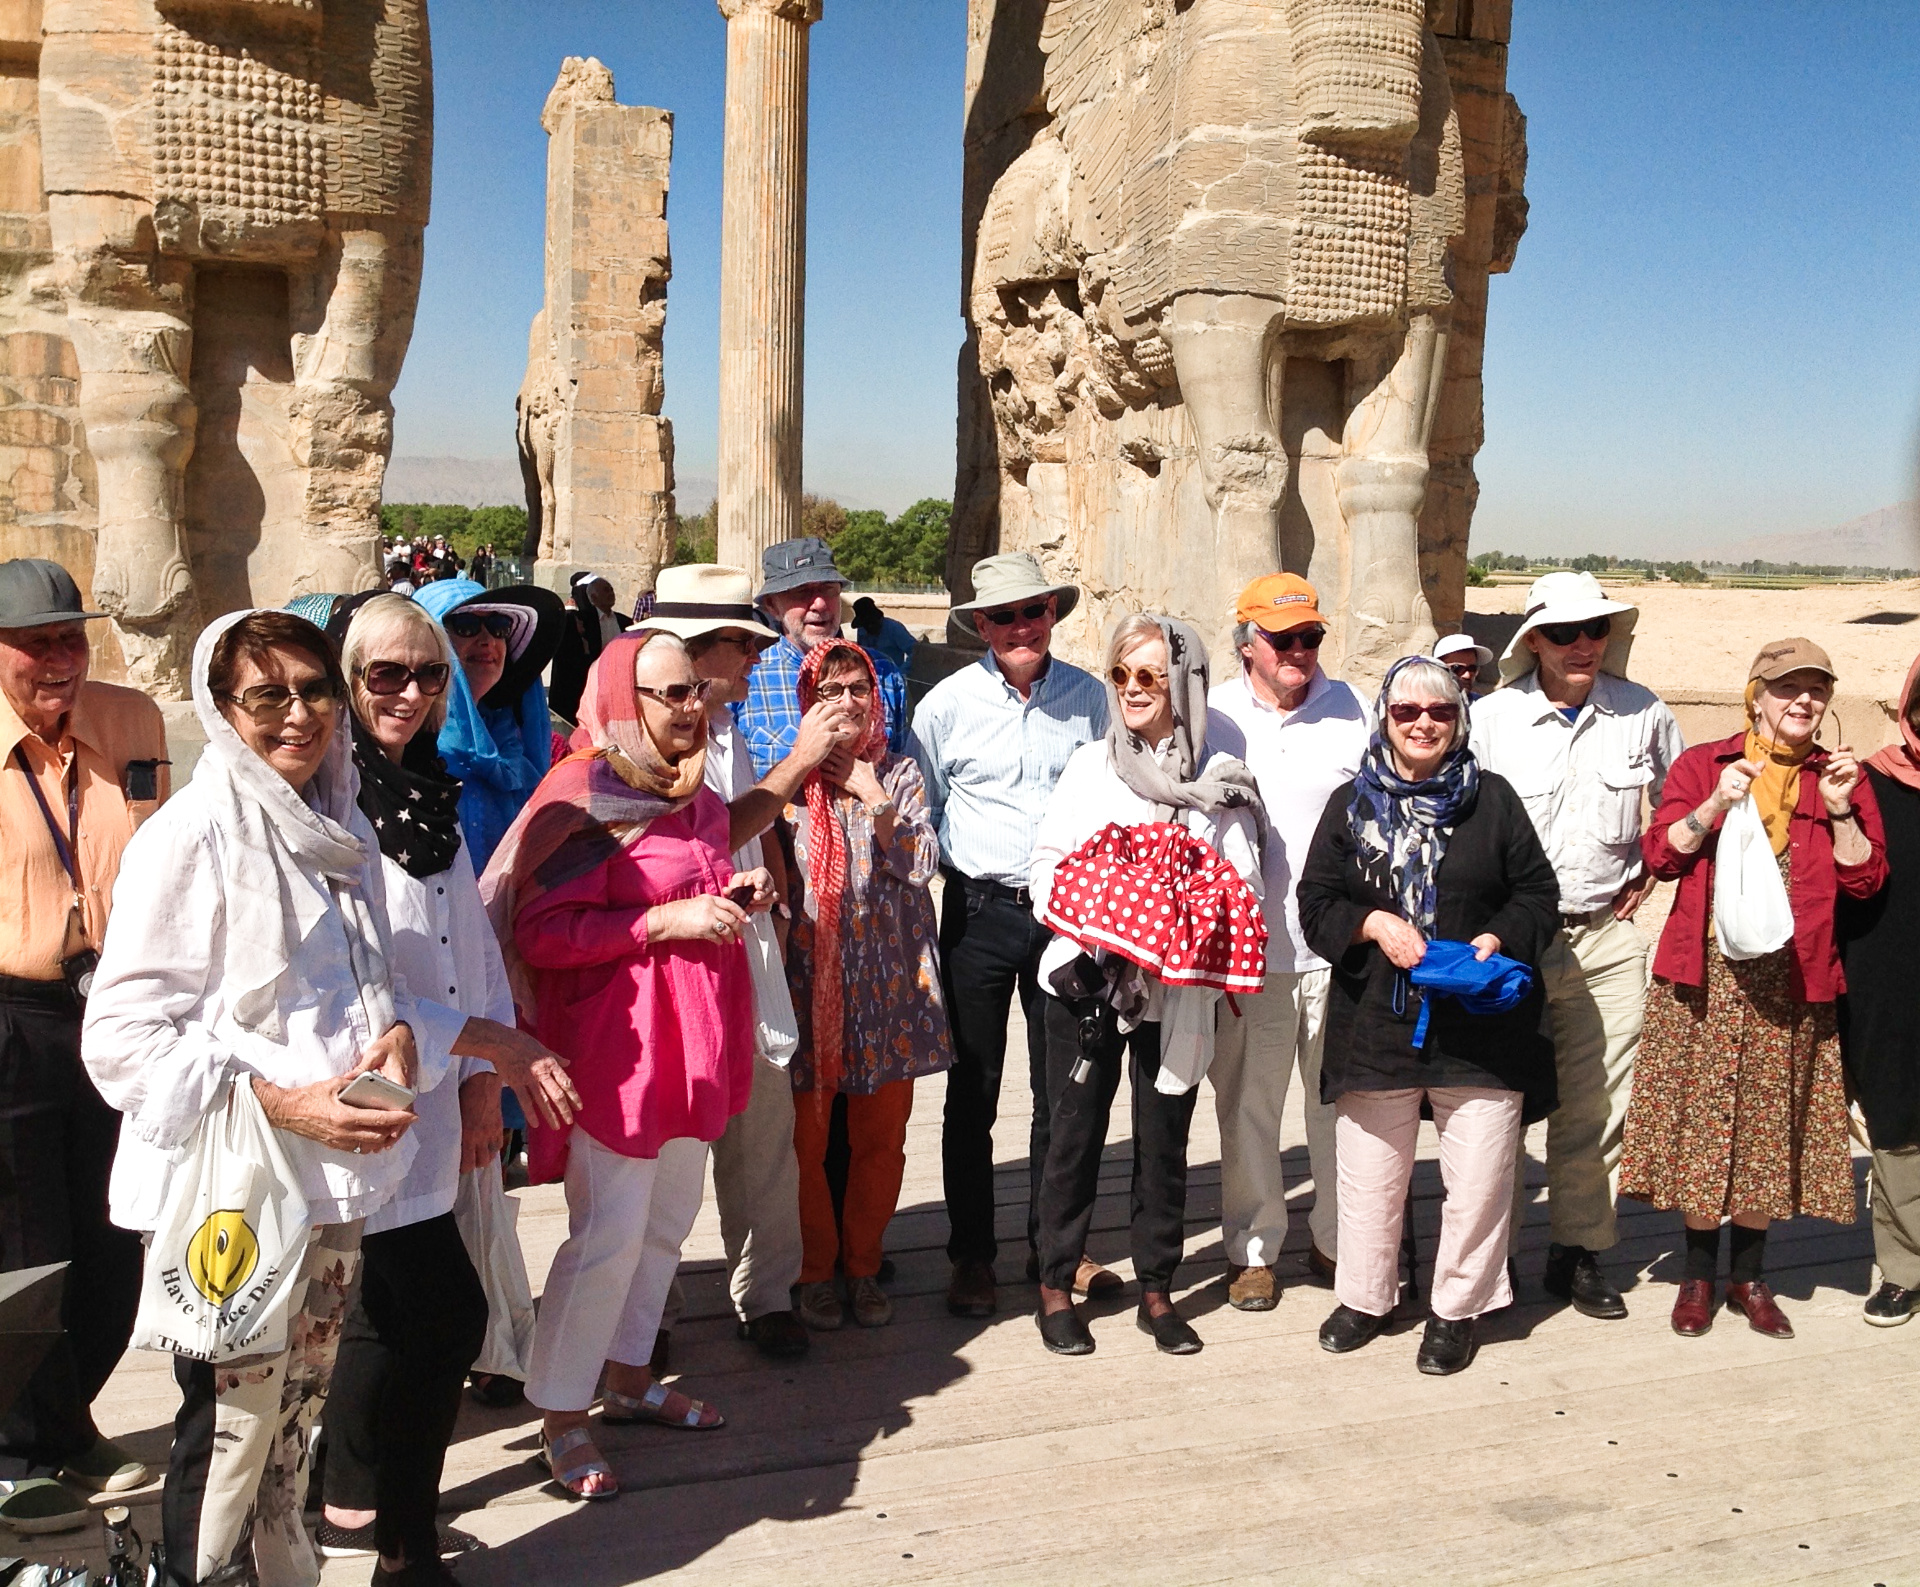 Happy-tour-members-Gate-of-all-nations-persepolis